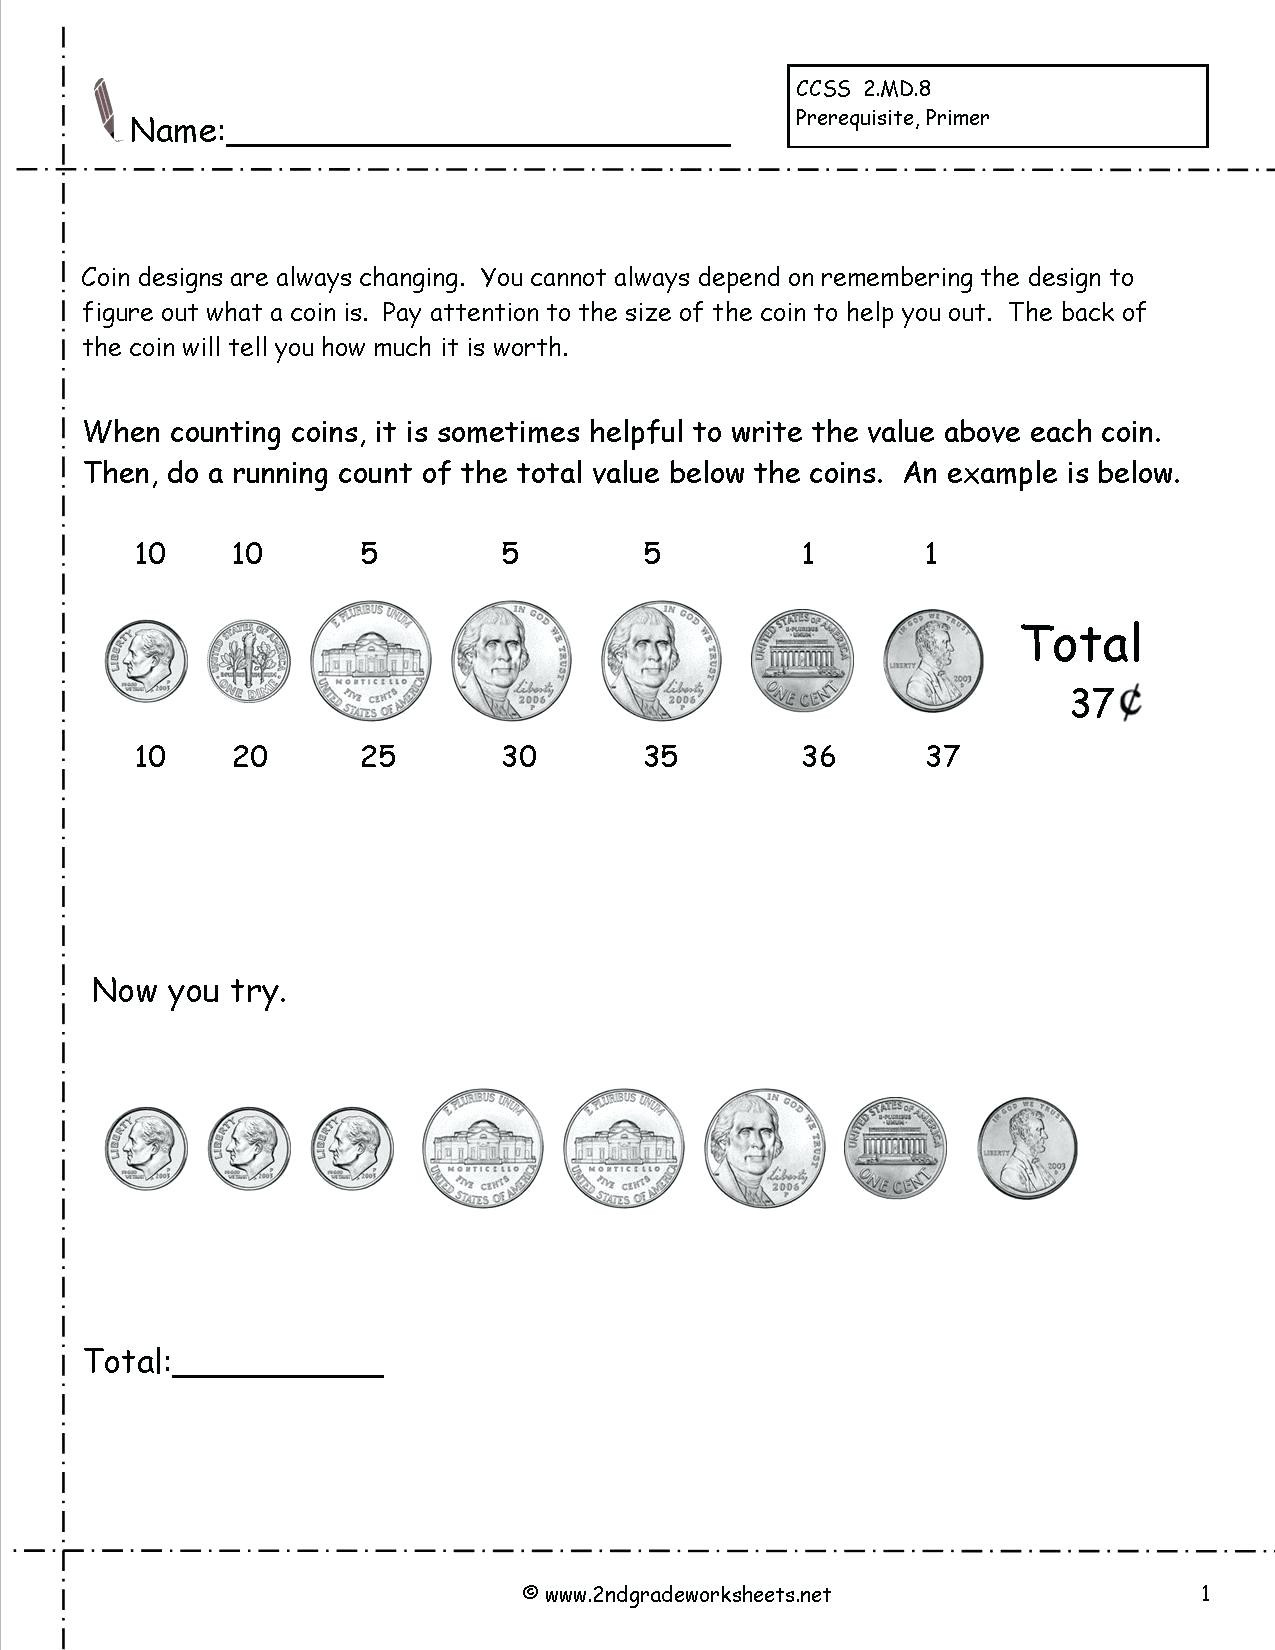 hight resolution of Worksheet Counting Pennies And Nickles   Printable Worksheets and  Activities for Teachers